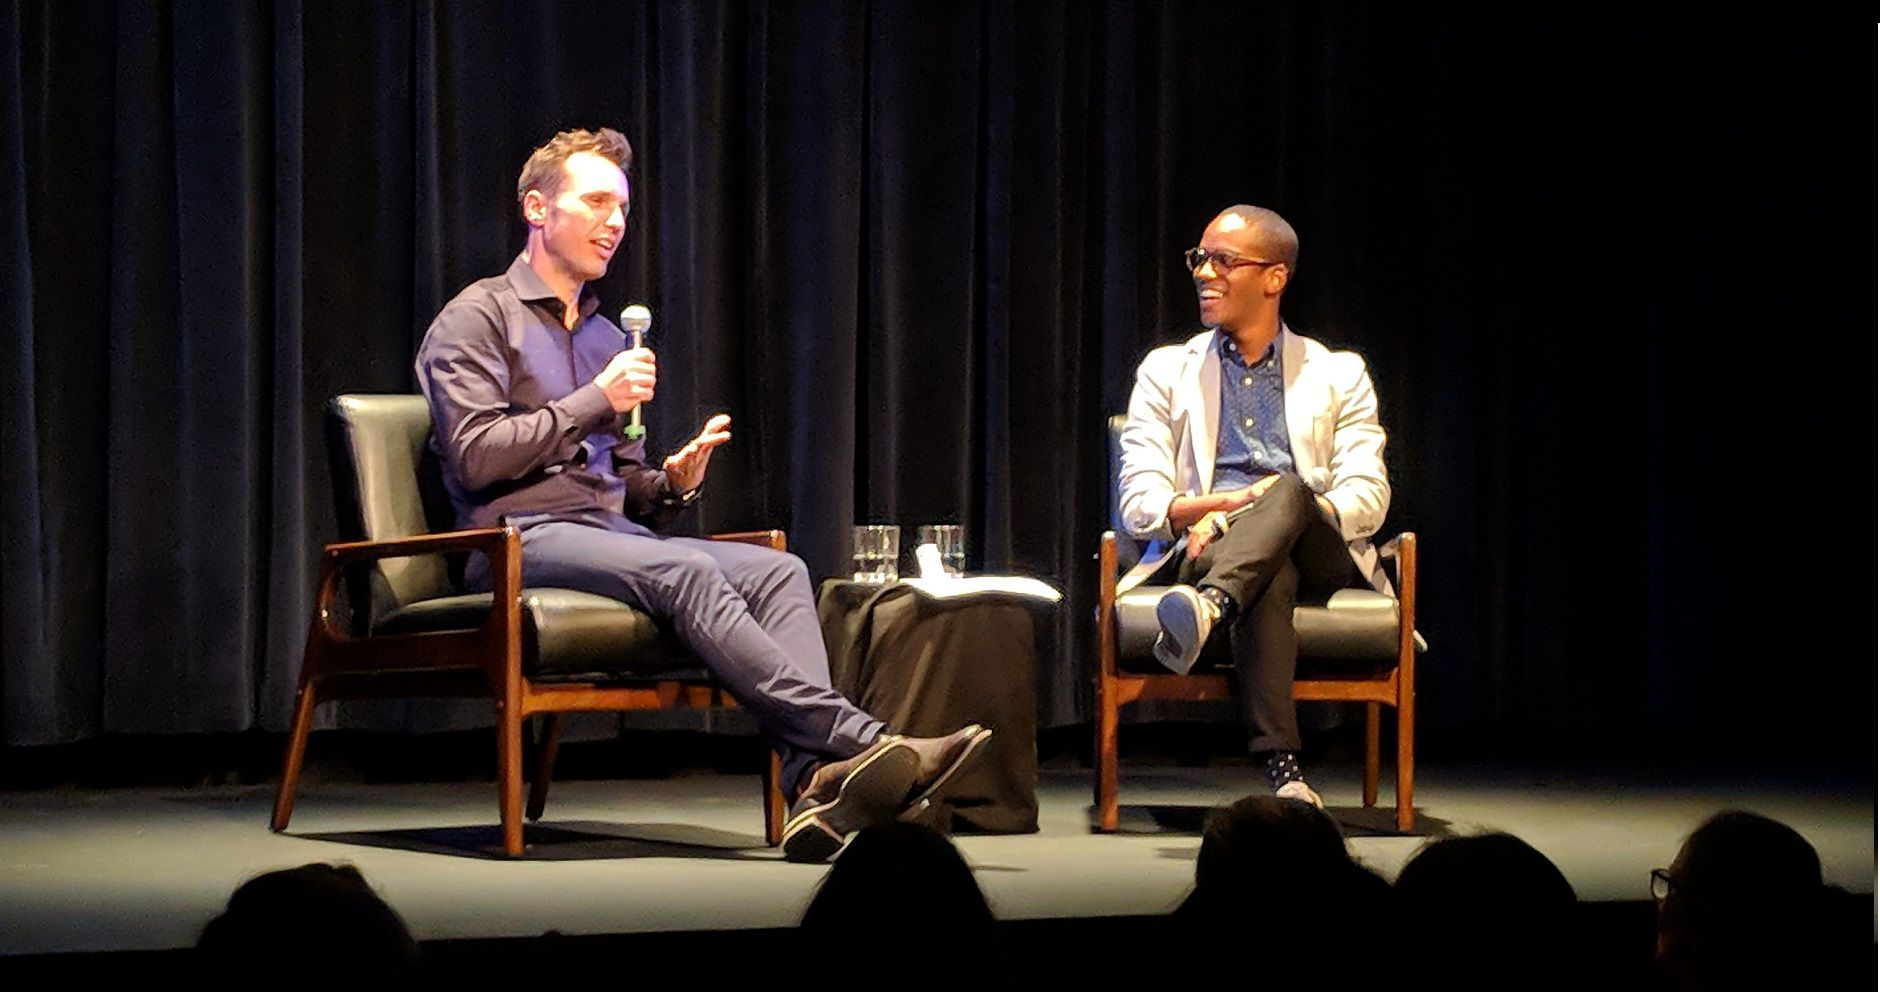 markus zusak discusses bridge of clay at new york city launch